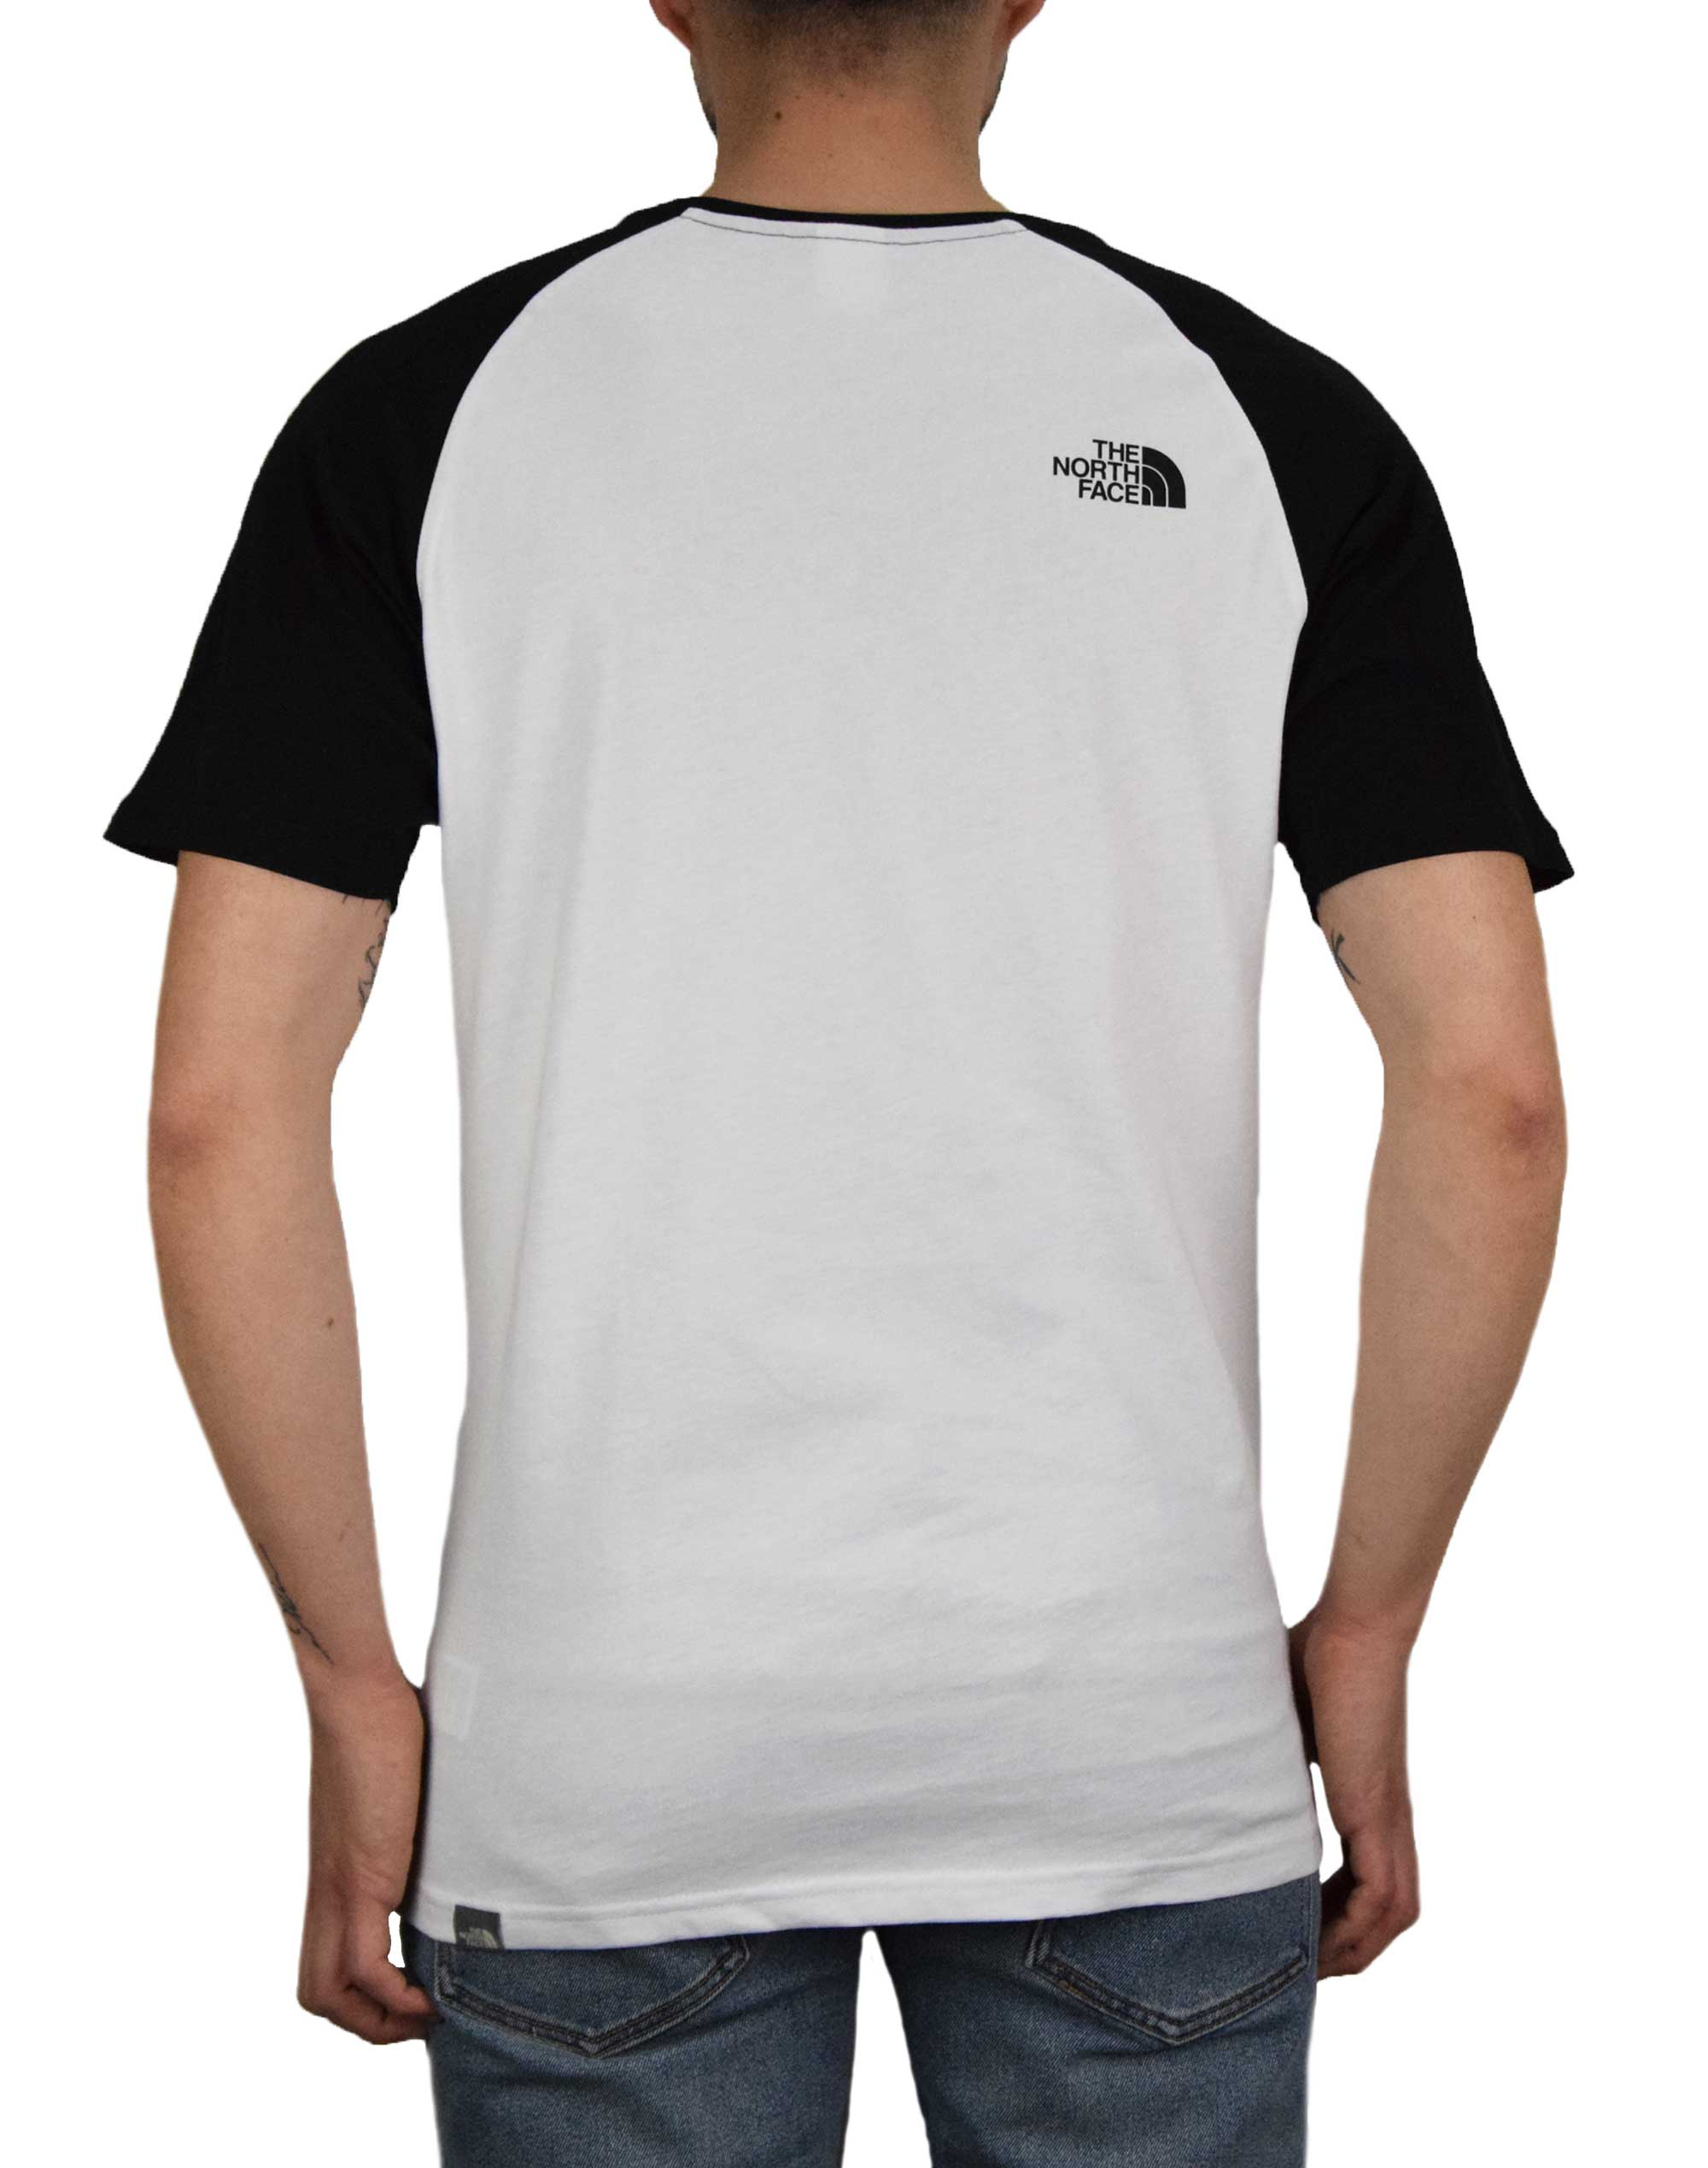 The North Face Raglan Easy Tee (NF0A37FVLA91) White/Black